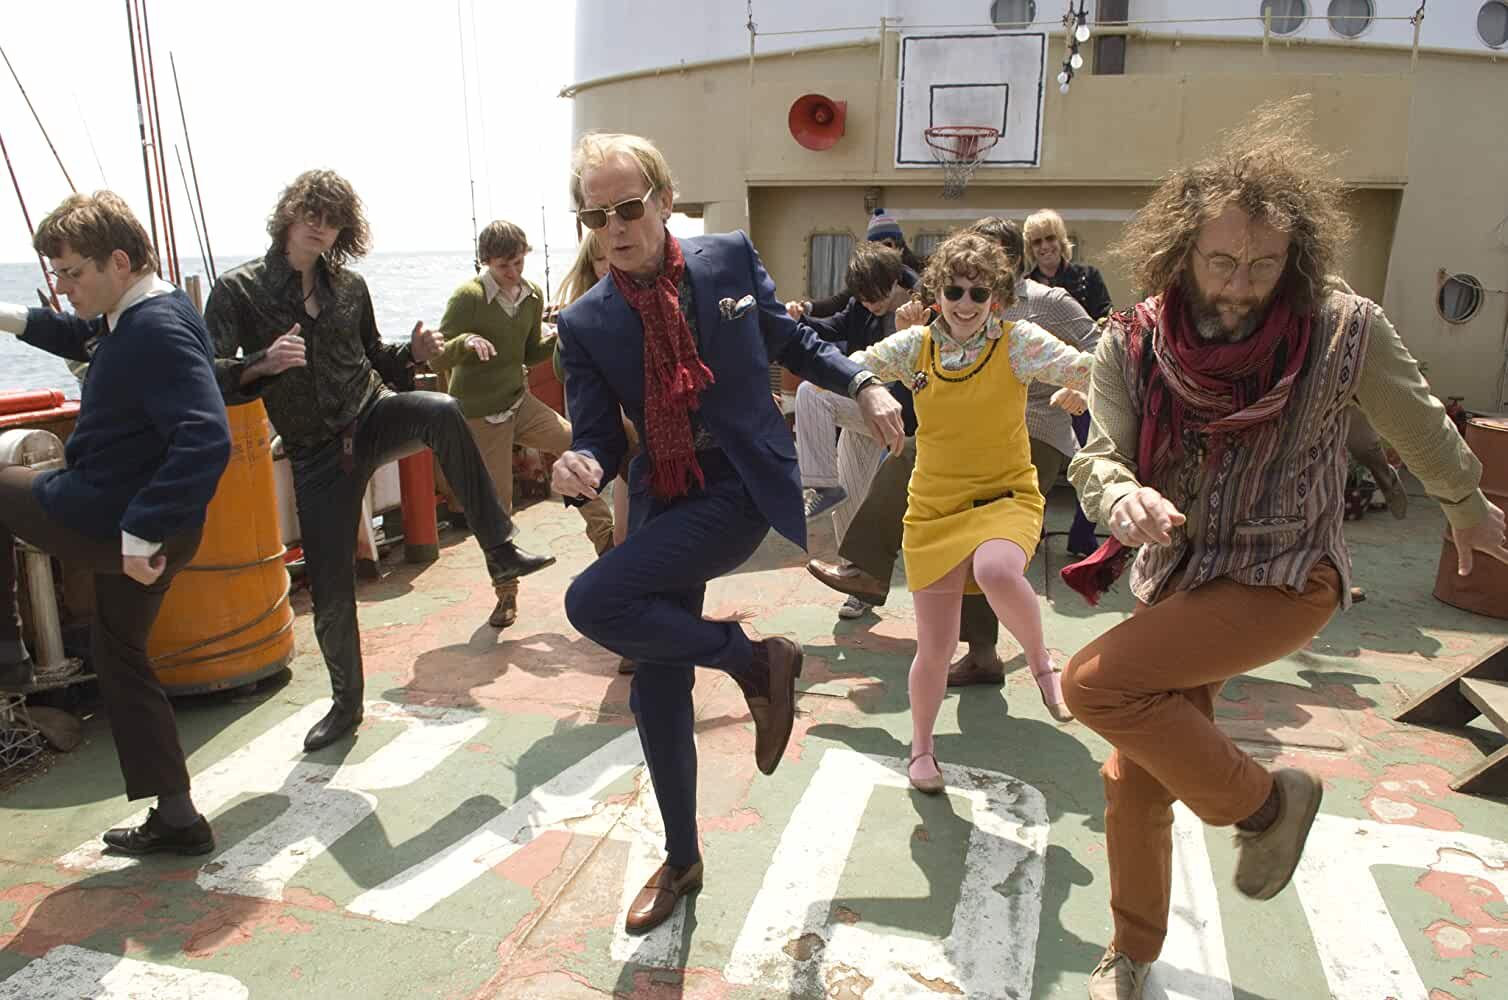 Will Adamsdale, Ralph Brown, Bill Nighy, and Katherine Parkinson in The Boat That Rocked (2009)